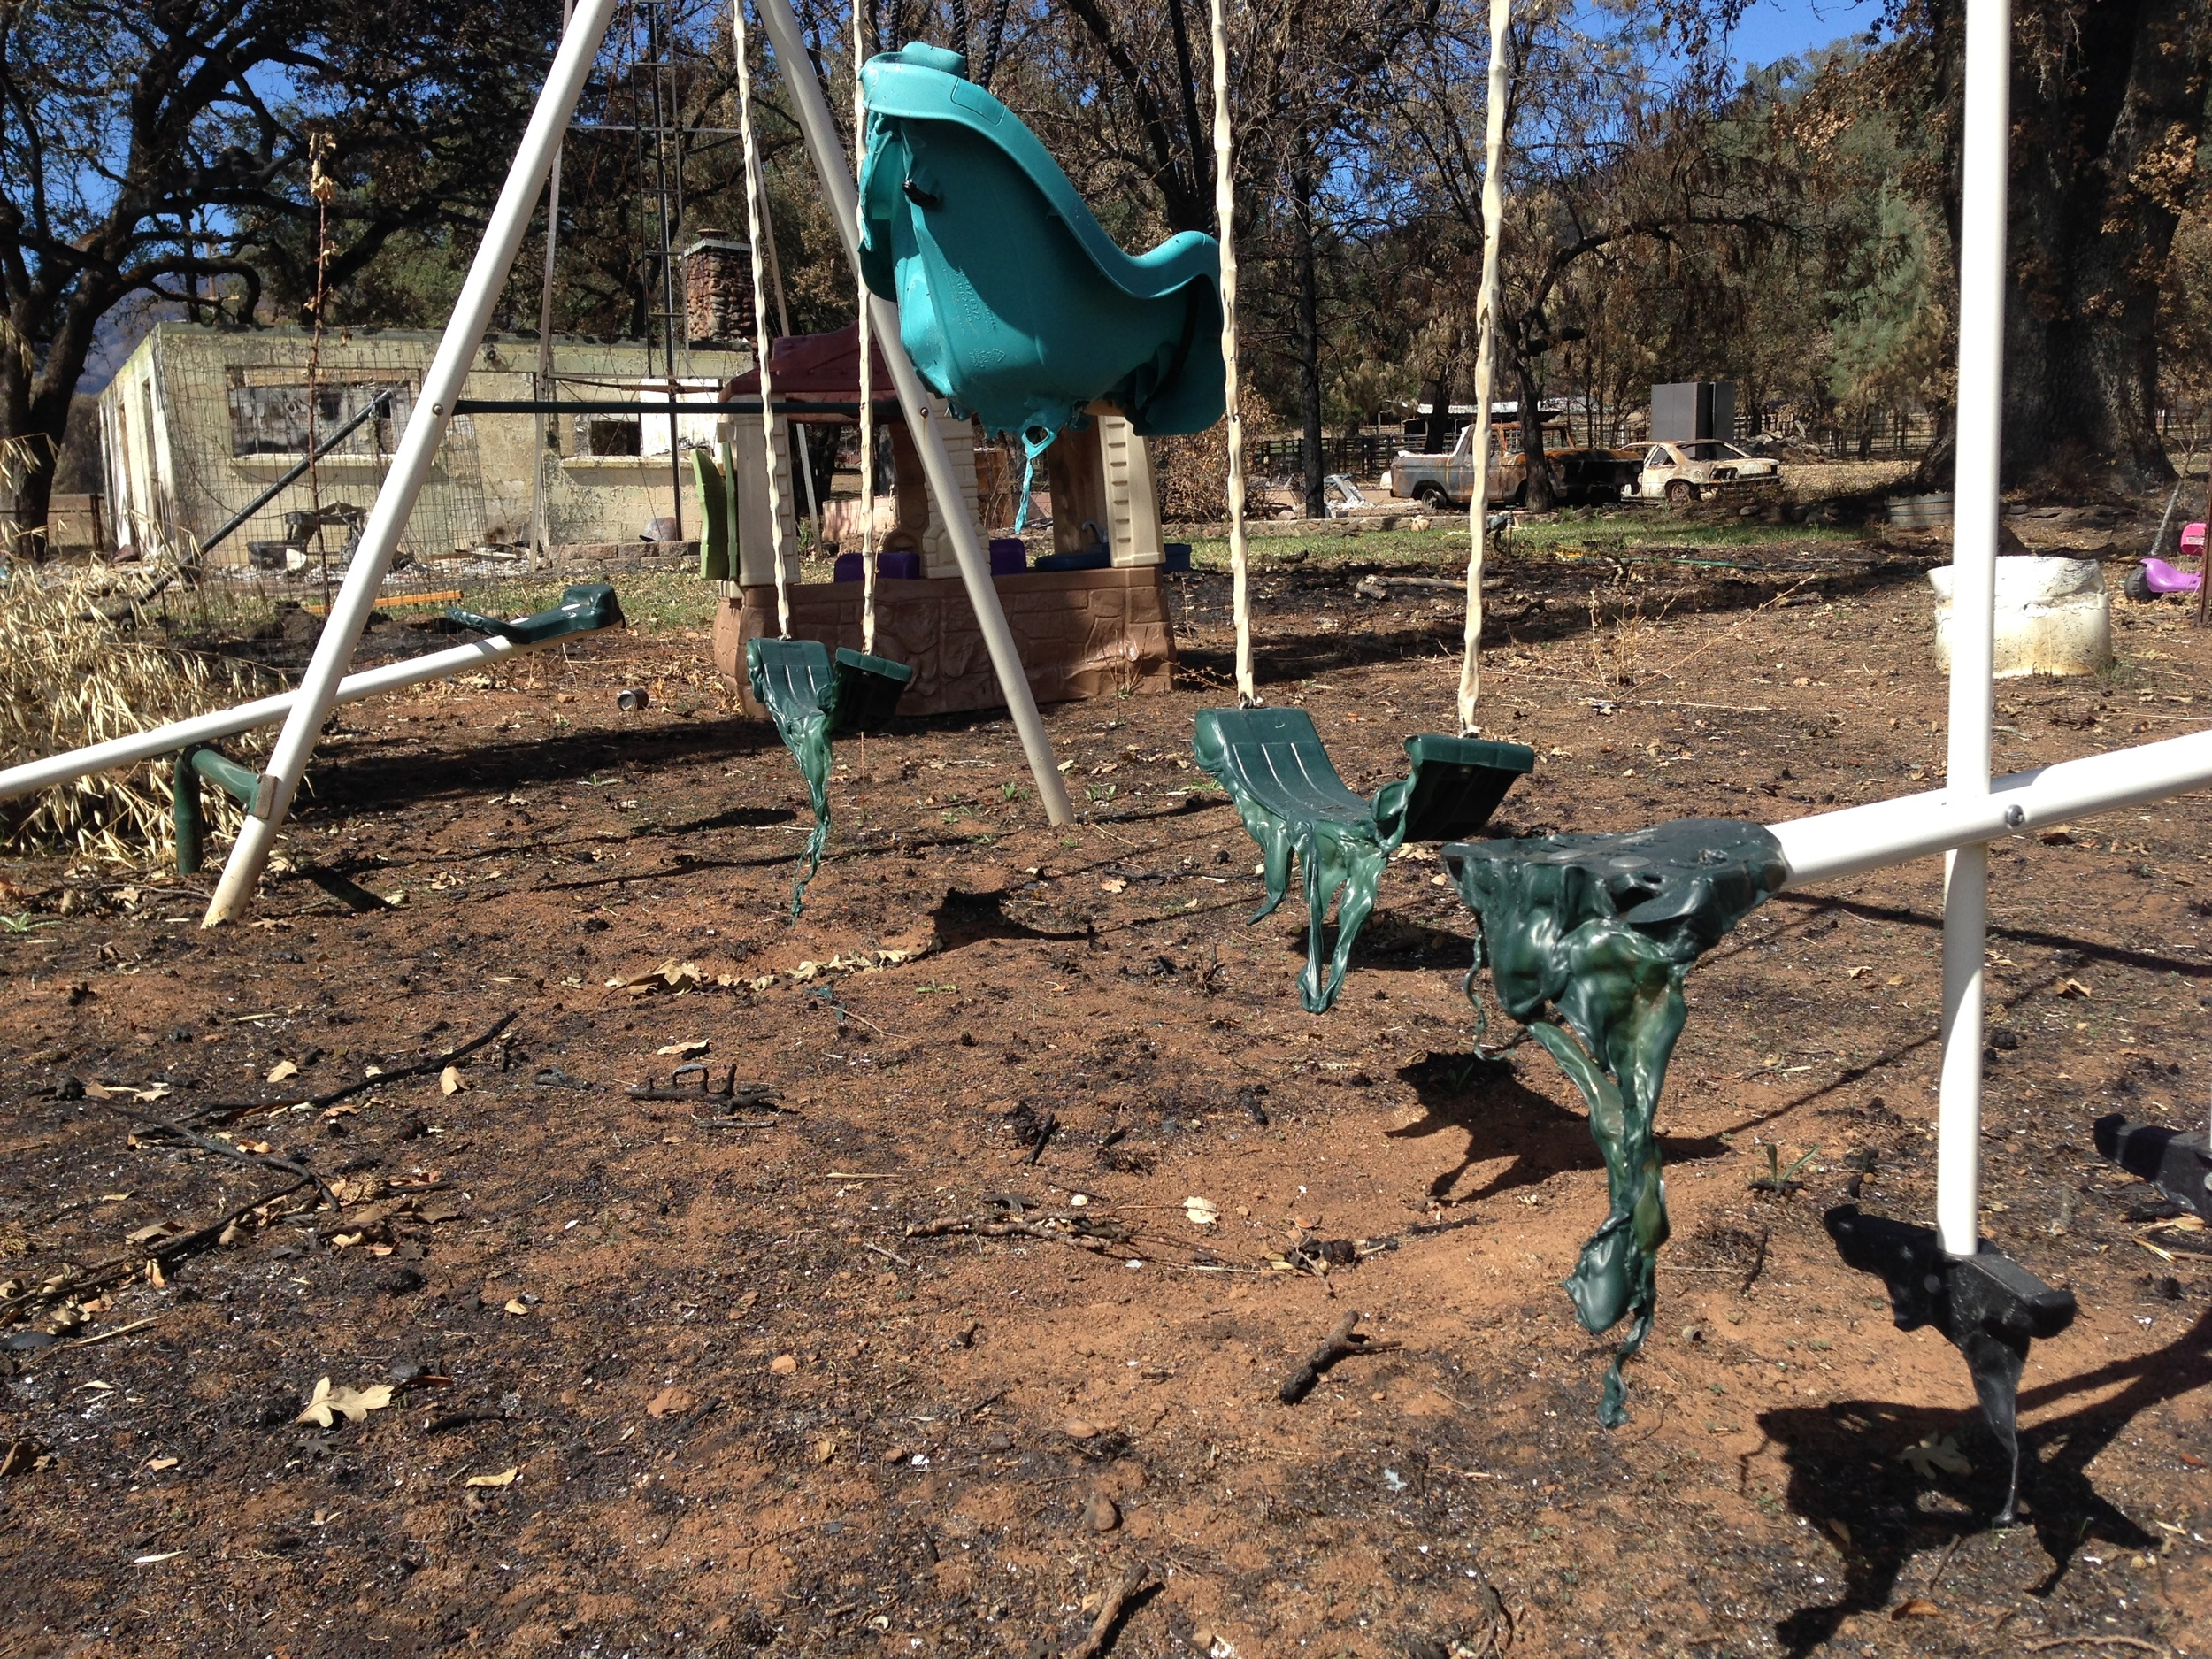 Swing set partially melted in The Valley Fire